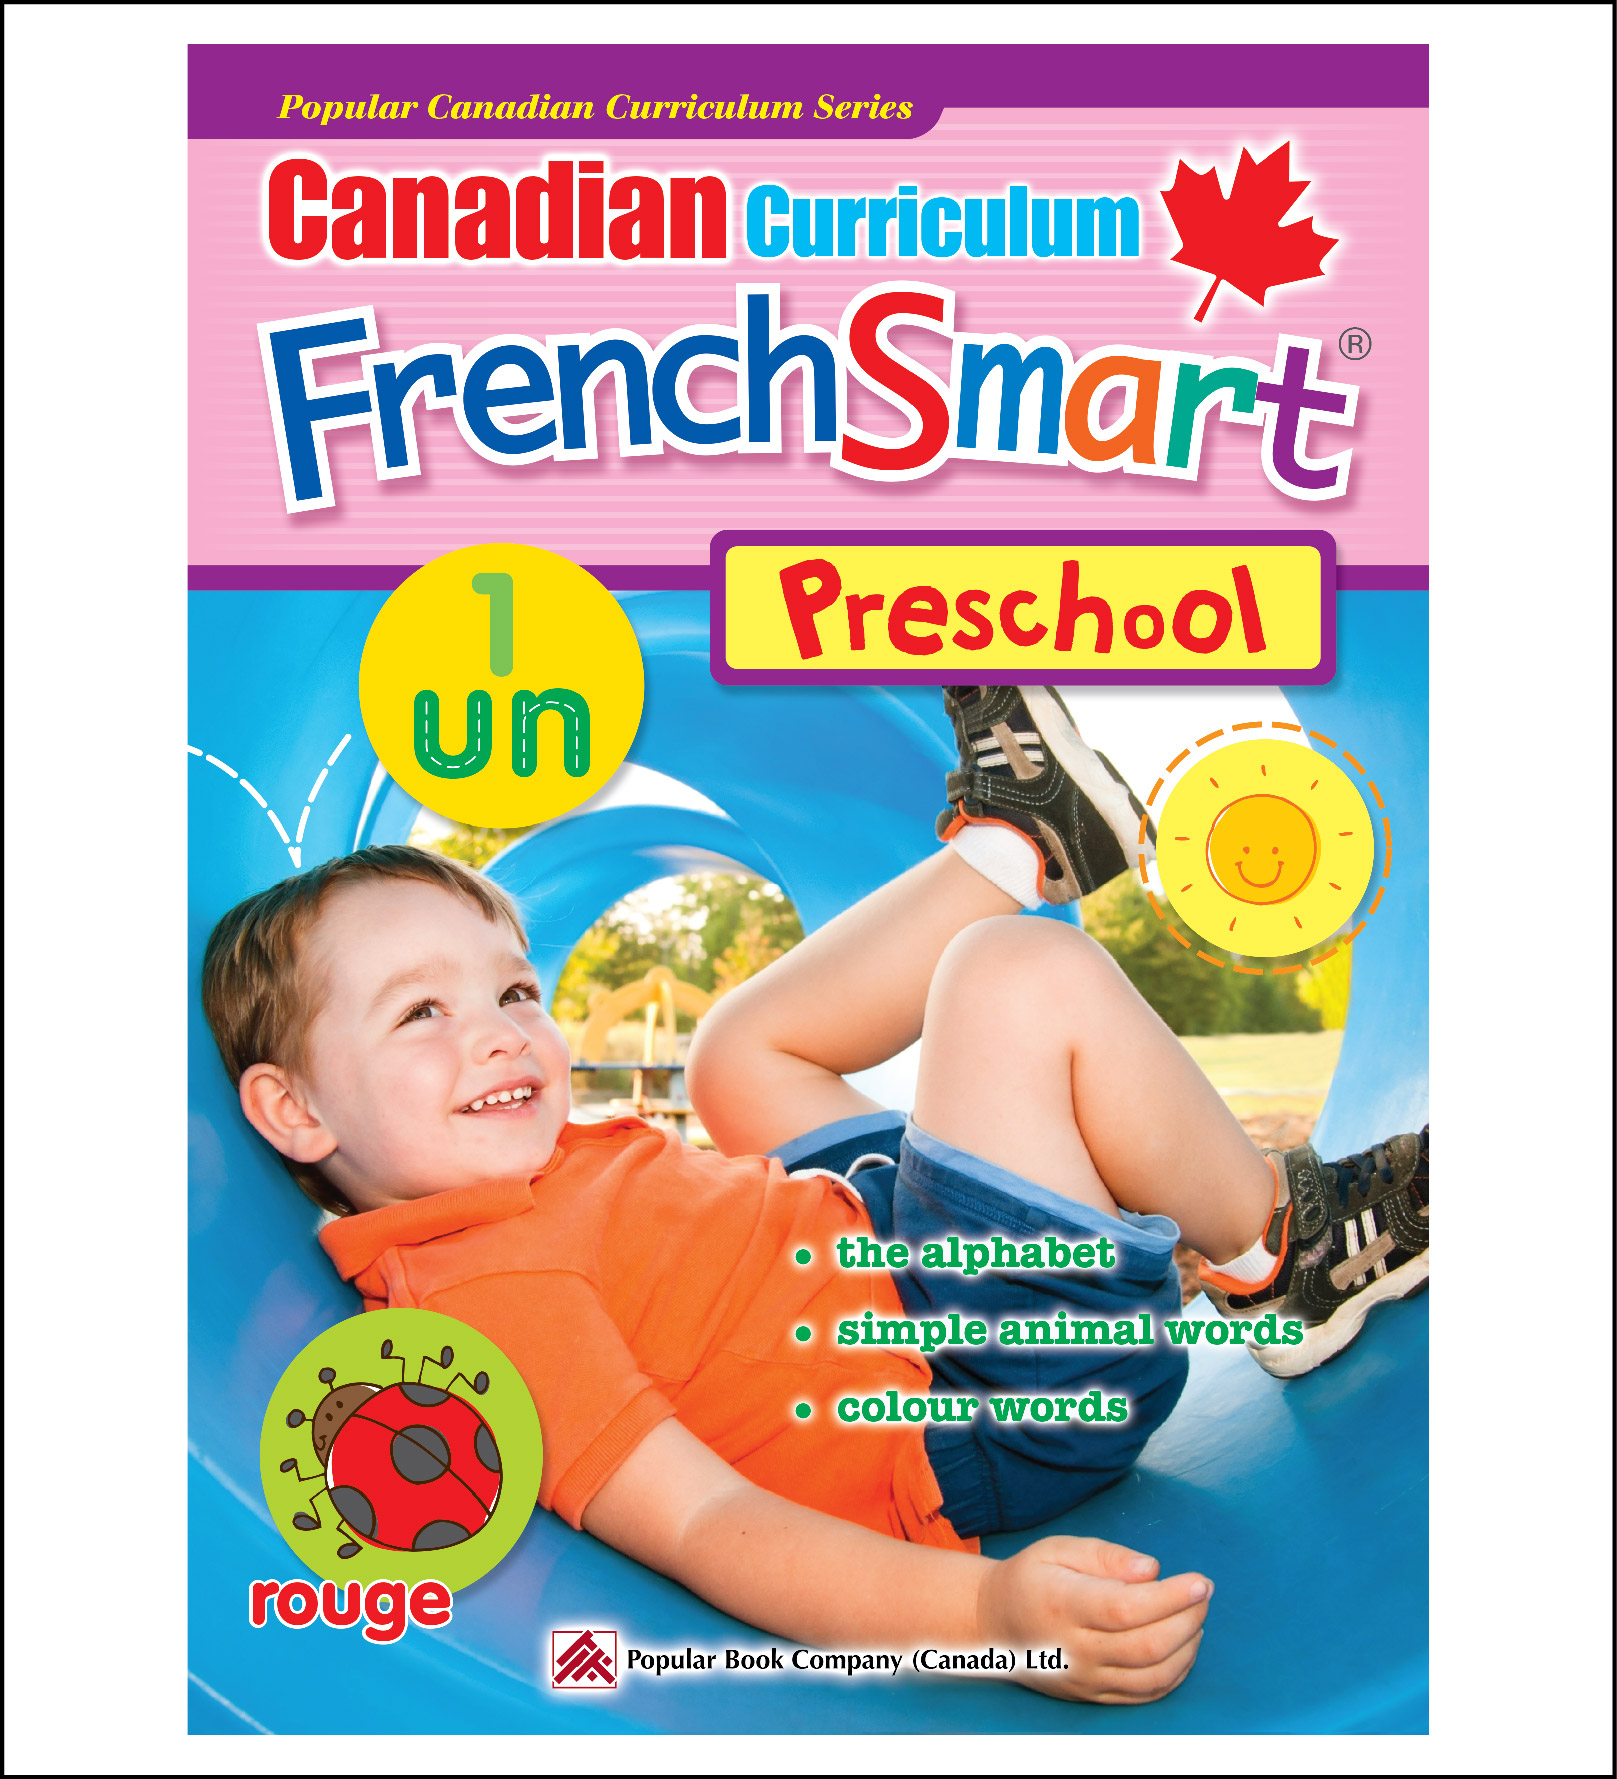 Activity Book for Kids Canadian Curriculum FrenchSmart Preschooll